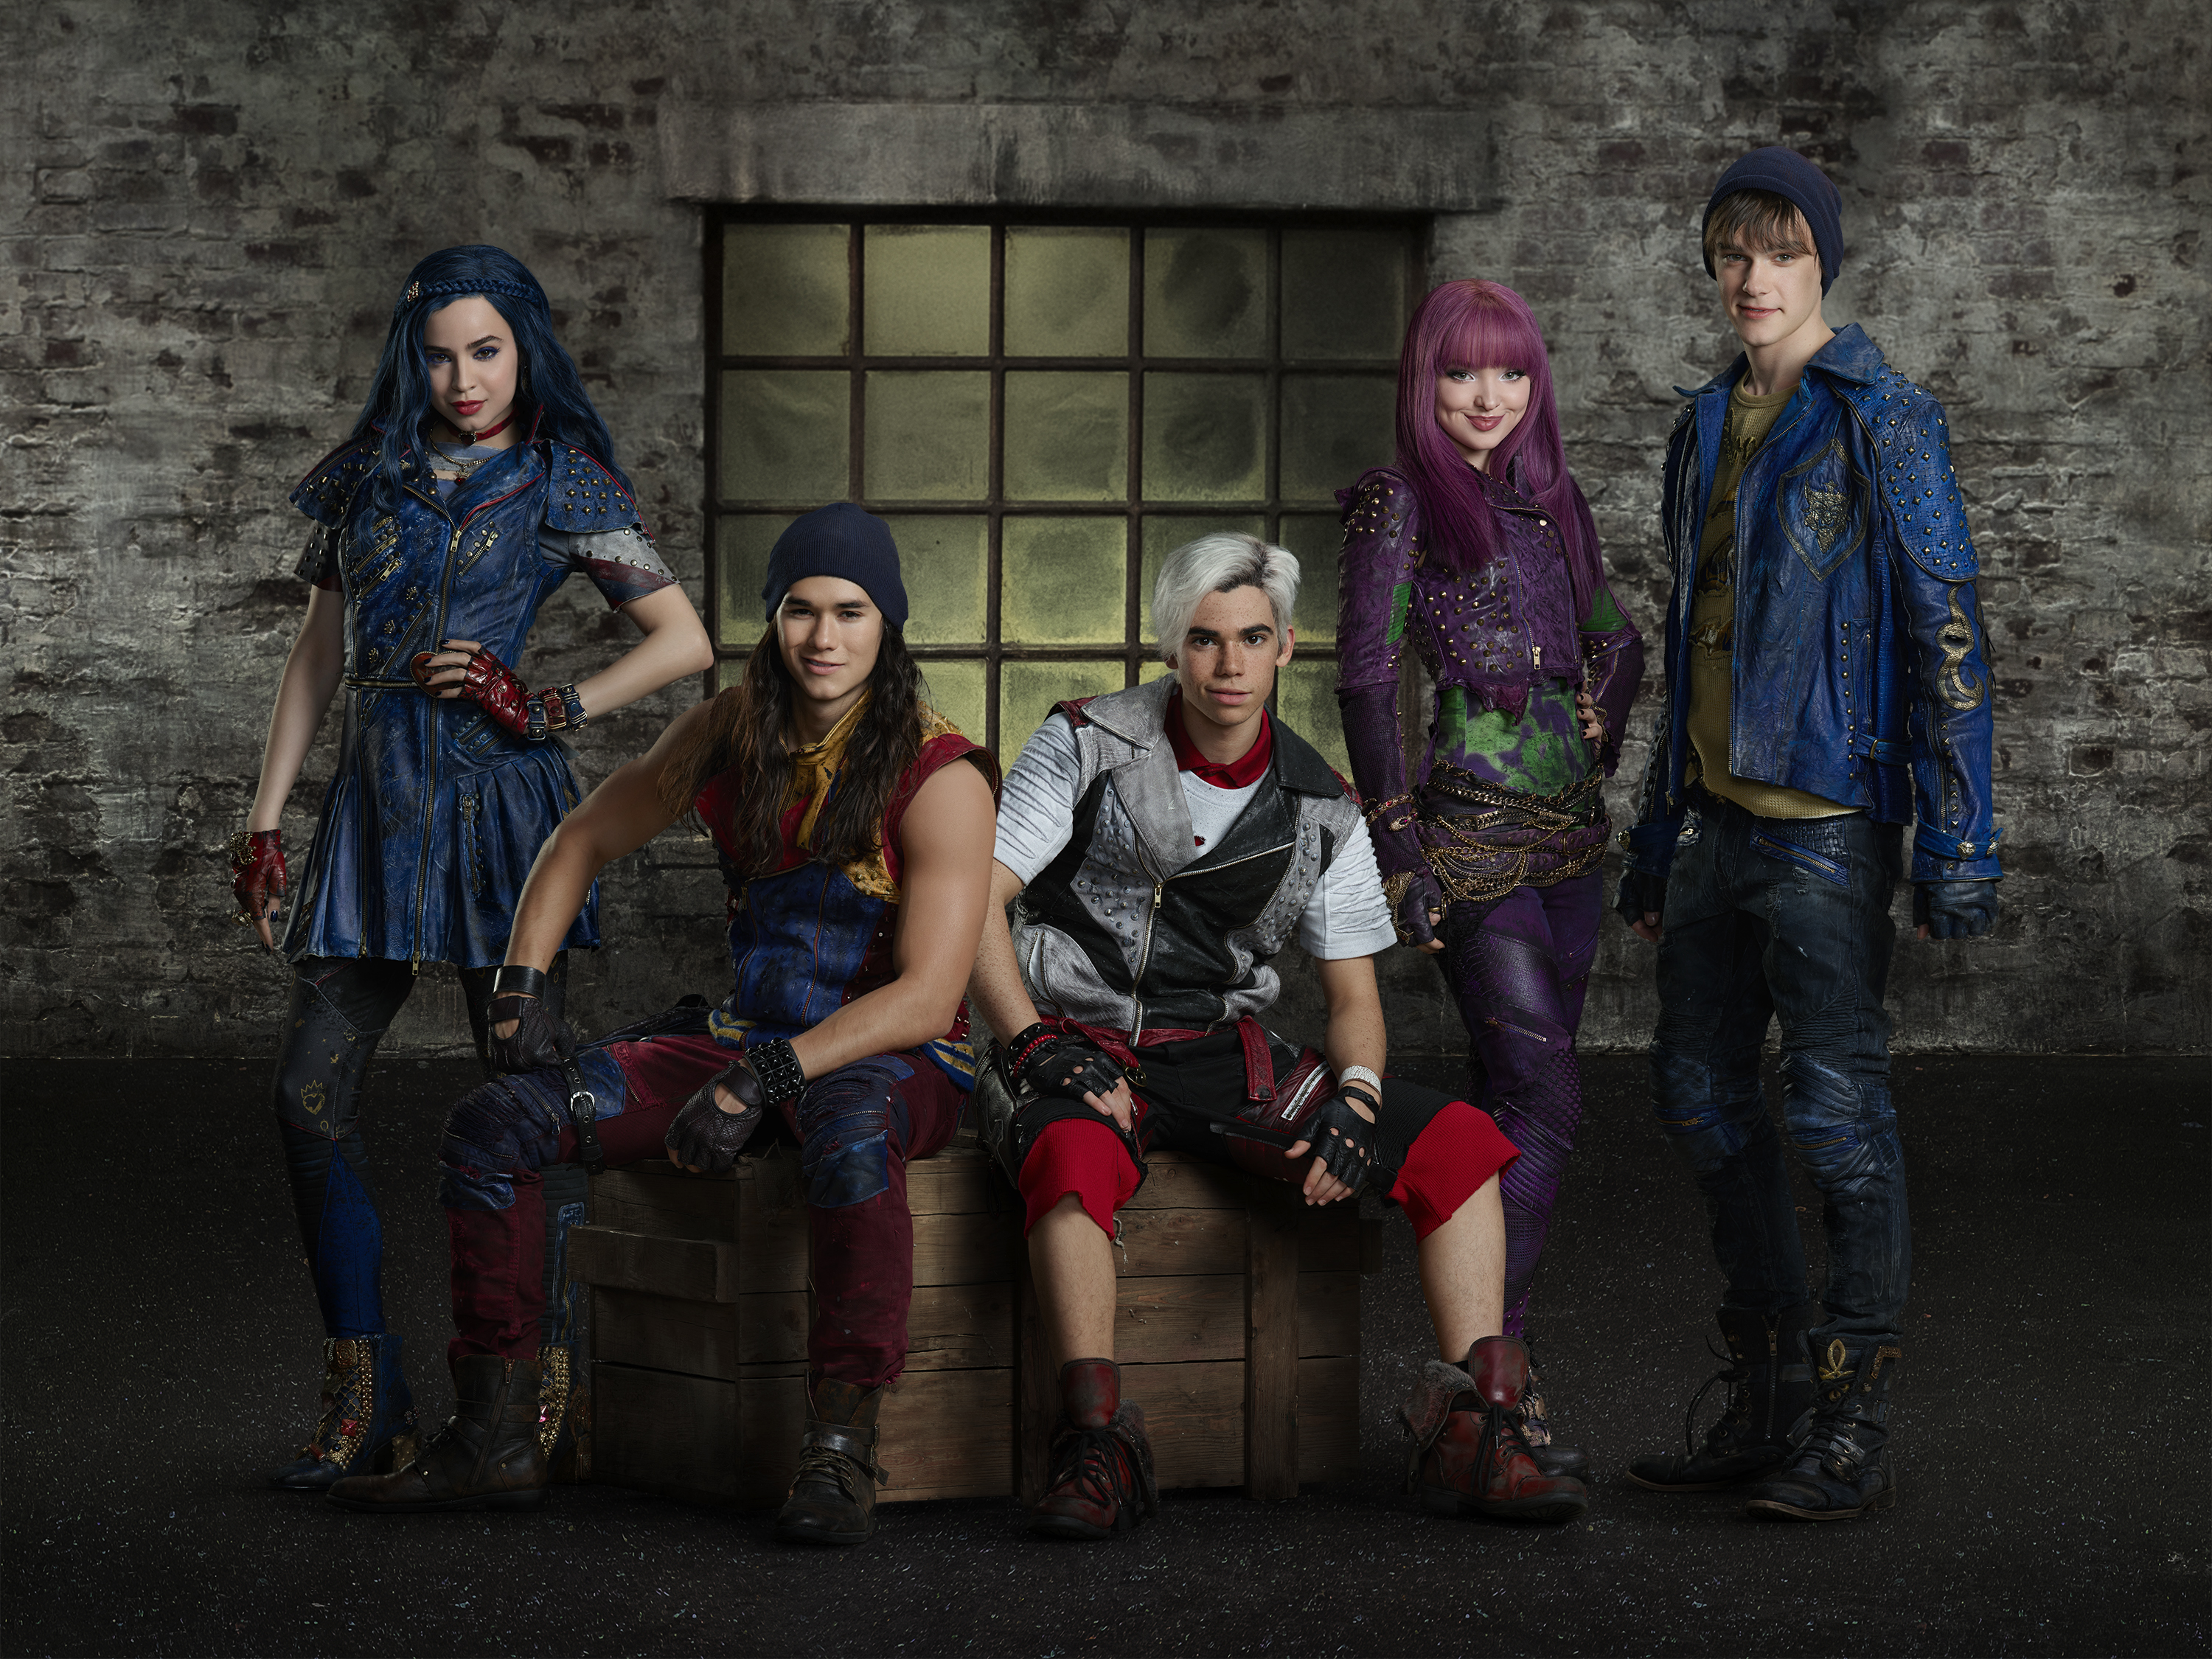 Descendants 2 is the highly anticipated sequel to Disney's Descendants which will continue to tell the imaginative story about the teenage sons and daughters of Disney's most infamous villains. Premiering in the UK in Autumn 2017 on Disney Channel and DisneyLife, Descendants 2 is set to be another tween phenomenon as the villain kids embark on another action-adventure filled with catchy song and dance numbers.   The first Disney Descendants was a global success and is the no.1 Disney Channel Original Movie ever among girls in the UK. The music from the movie has been extremely popular with tween fans, with the lead song 'Rotten to the Core' generating more than 220 million YouTube views.  Featuring: Sofia Carson, Booboo Stewart, Cameron Boyce, Dove Cameron, Mitchell Hope Where: Vancouver, Canada When: 04 May 2017 Credit: Disney (Supplied by WENN)  **EDITORIAL USE ONLY**